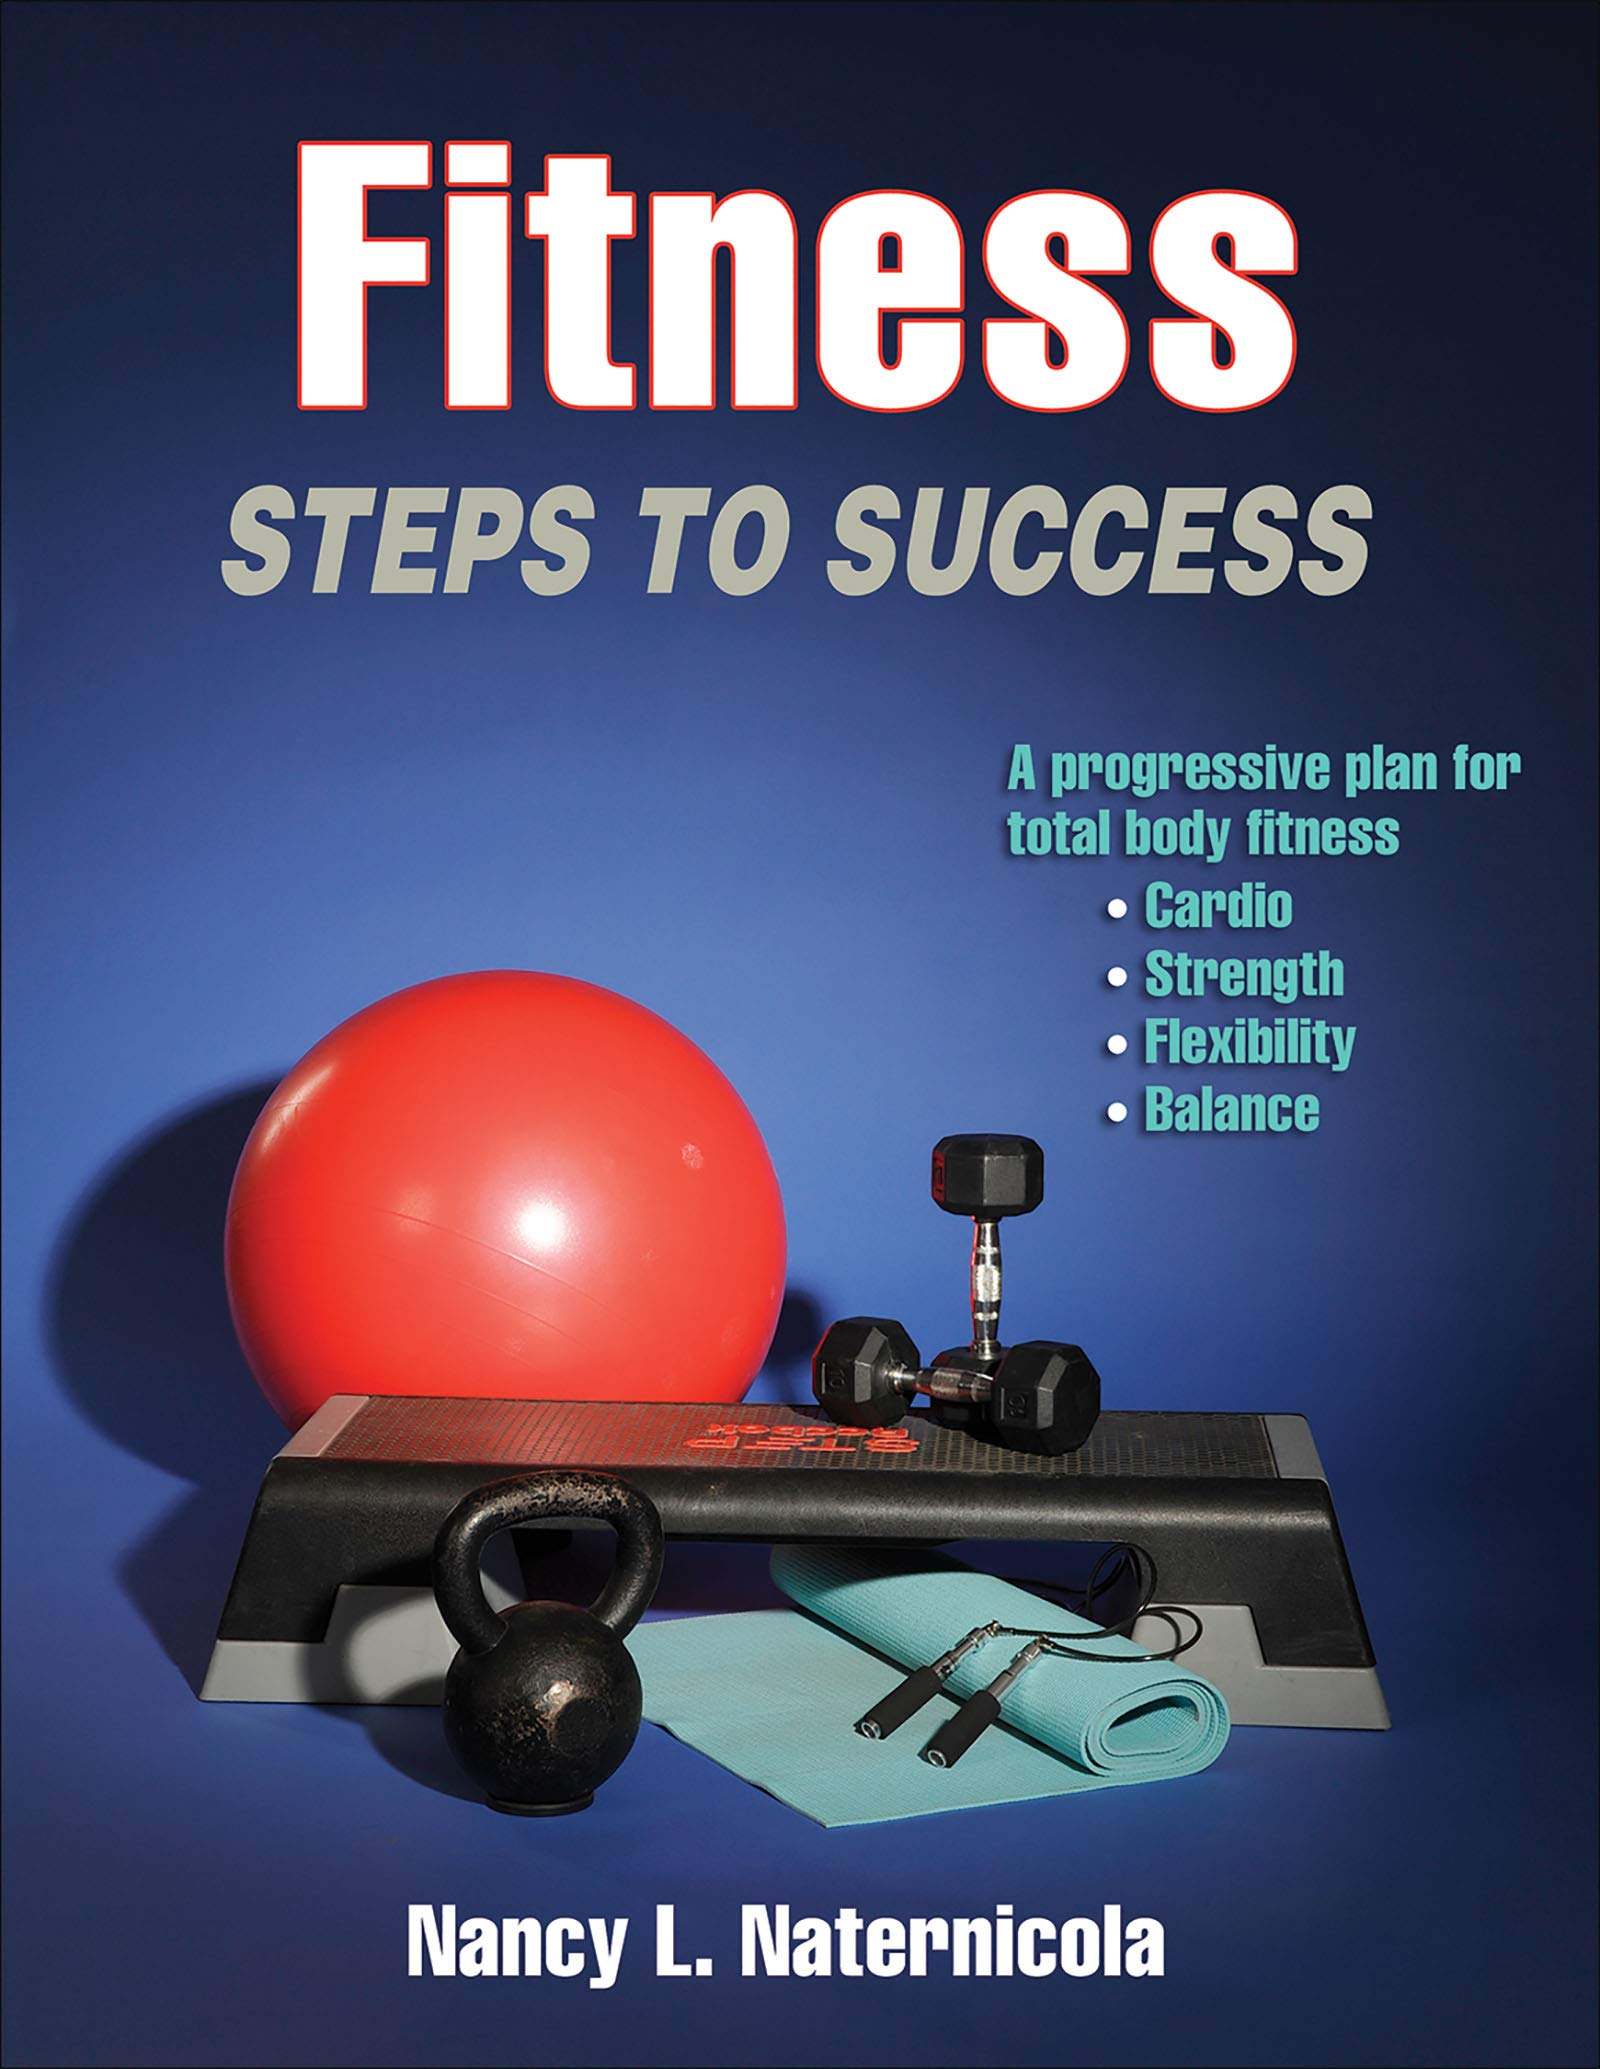 Fitness Steps To Success Sts Steps To Success Activity Naternicola Nancy L 0001450468853 Amazon Com Books